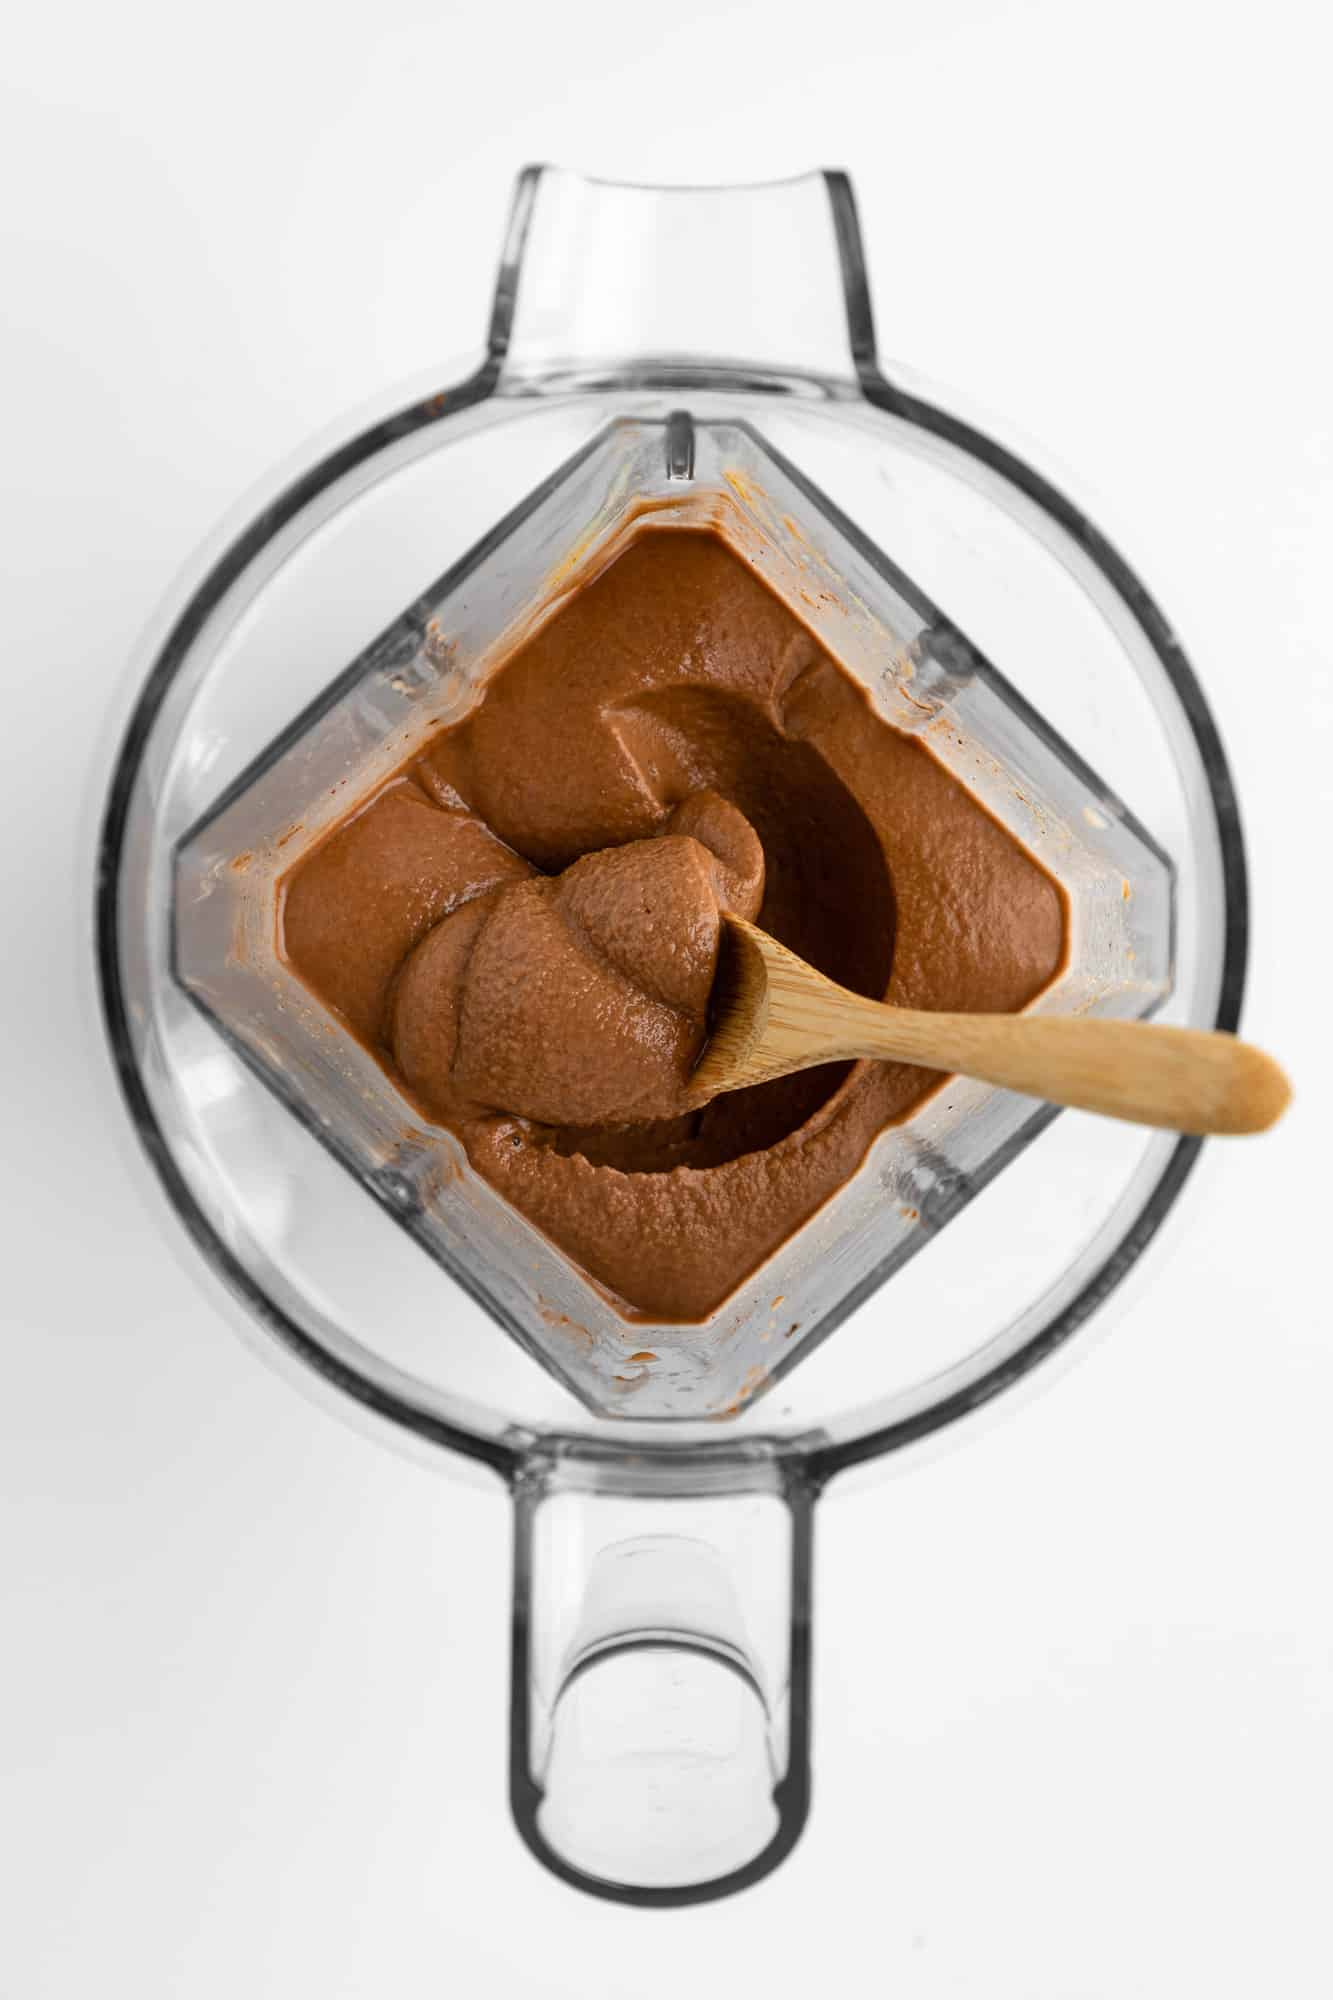 a wooden spoon scooping thick chocolate smoothie out of a vitamix blender